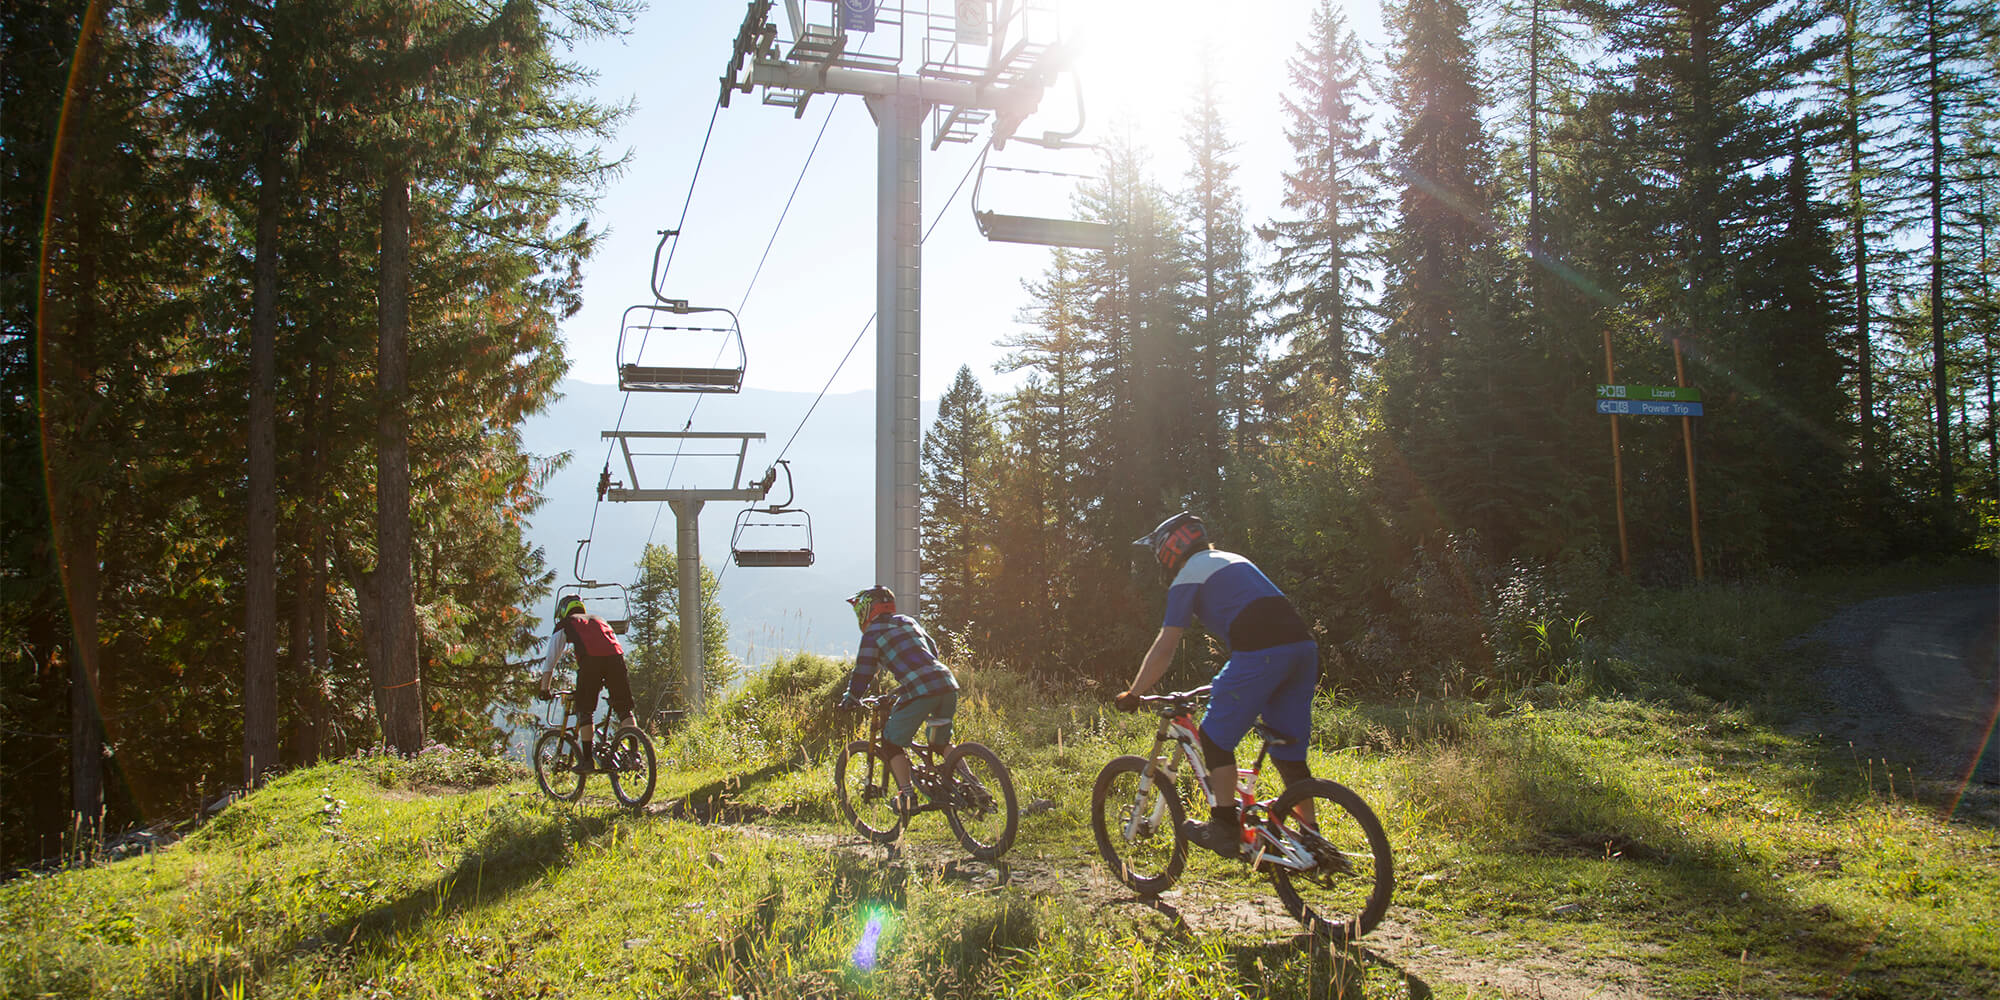 Three people on mountain bikes below a ski lift chair in the summertime in Fernie, BC.